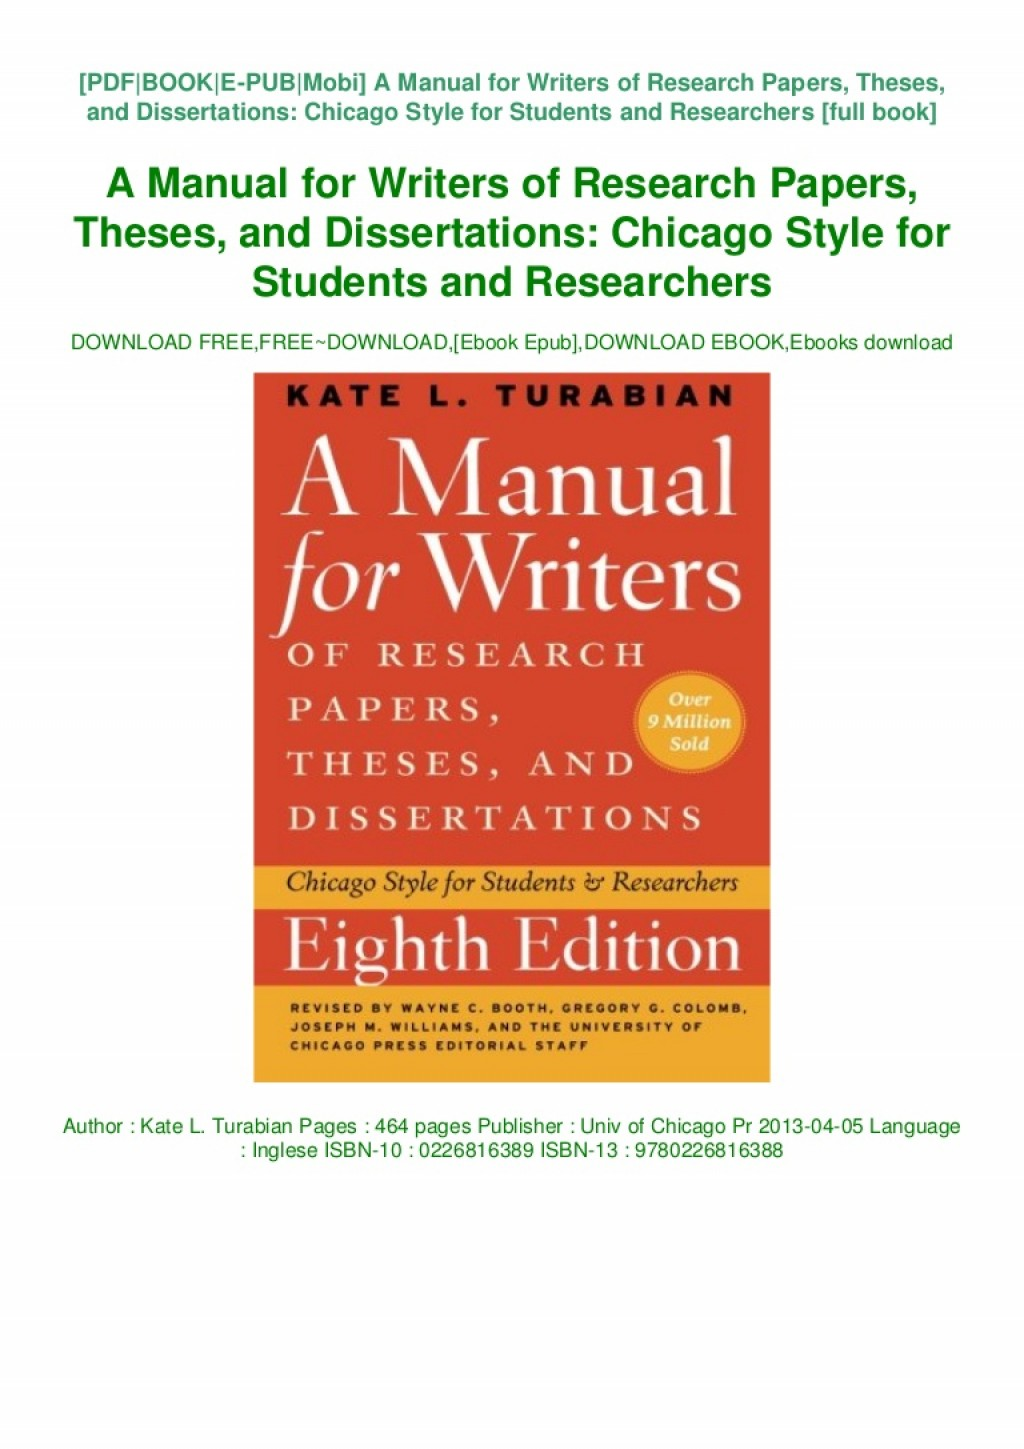 005 Manual For Writers Of Researchs Theses And Dissertations Book Thumbnail Magnificent Research Papers A Amazon 9th Edition Pdf 8th 13 Large